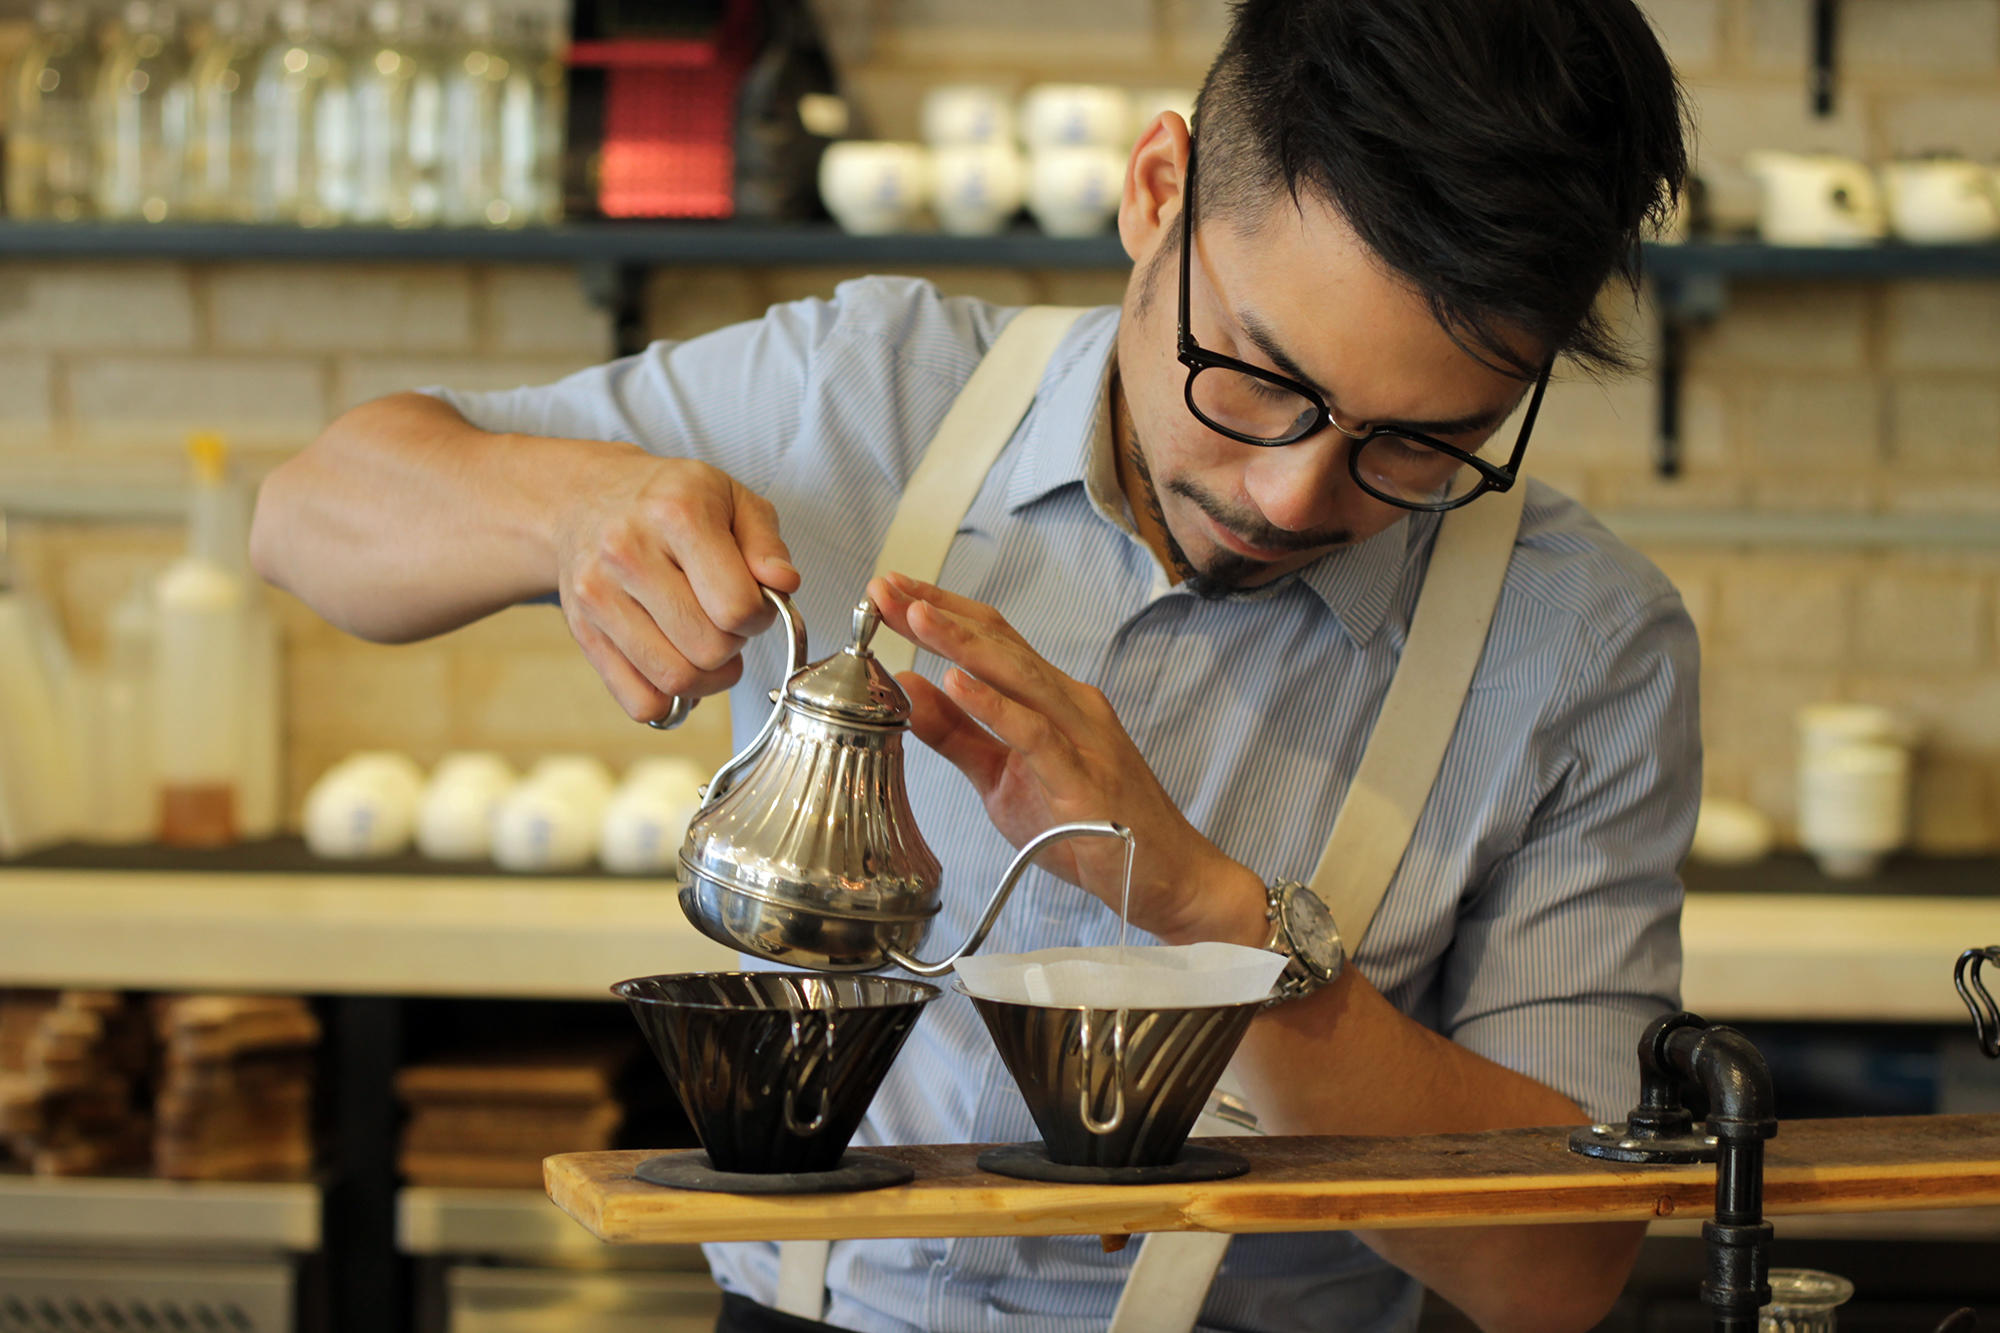 Pour Over Coffee Guy